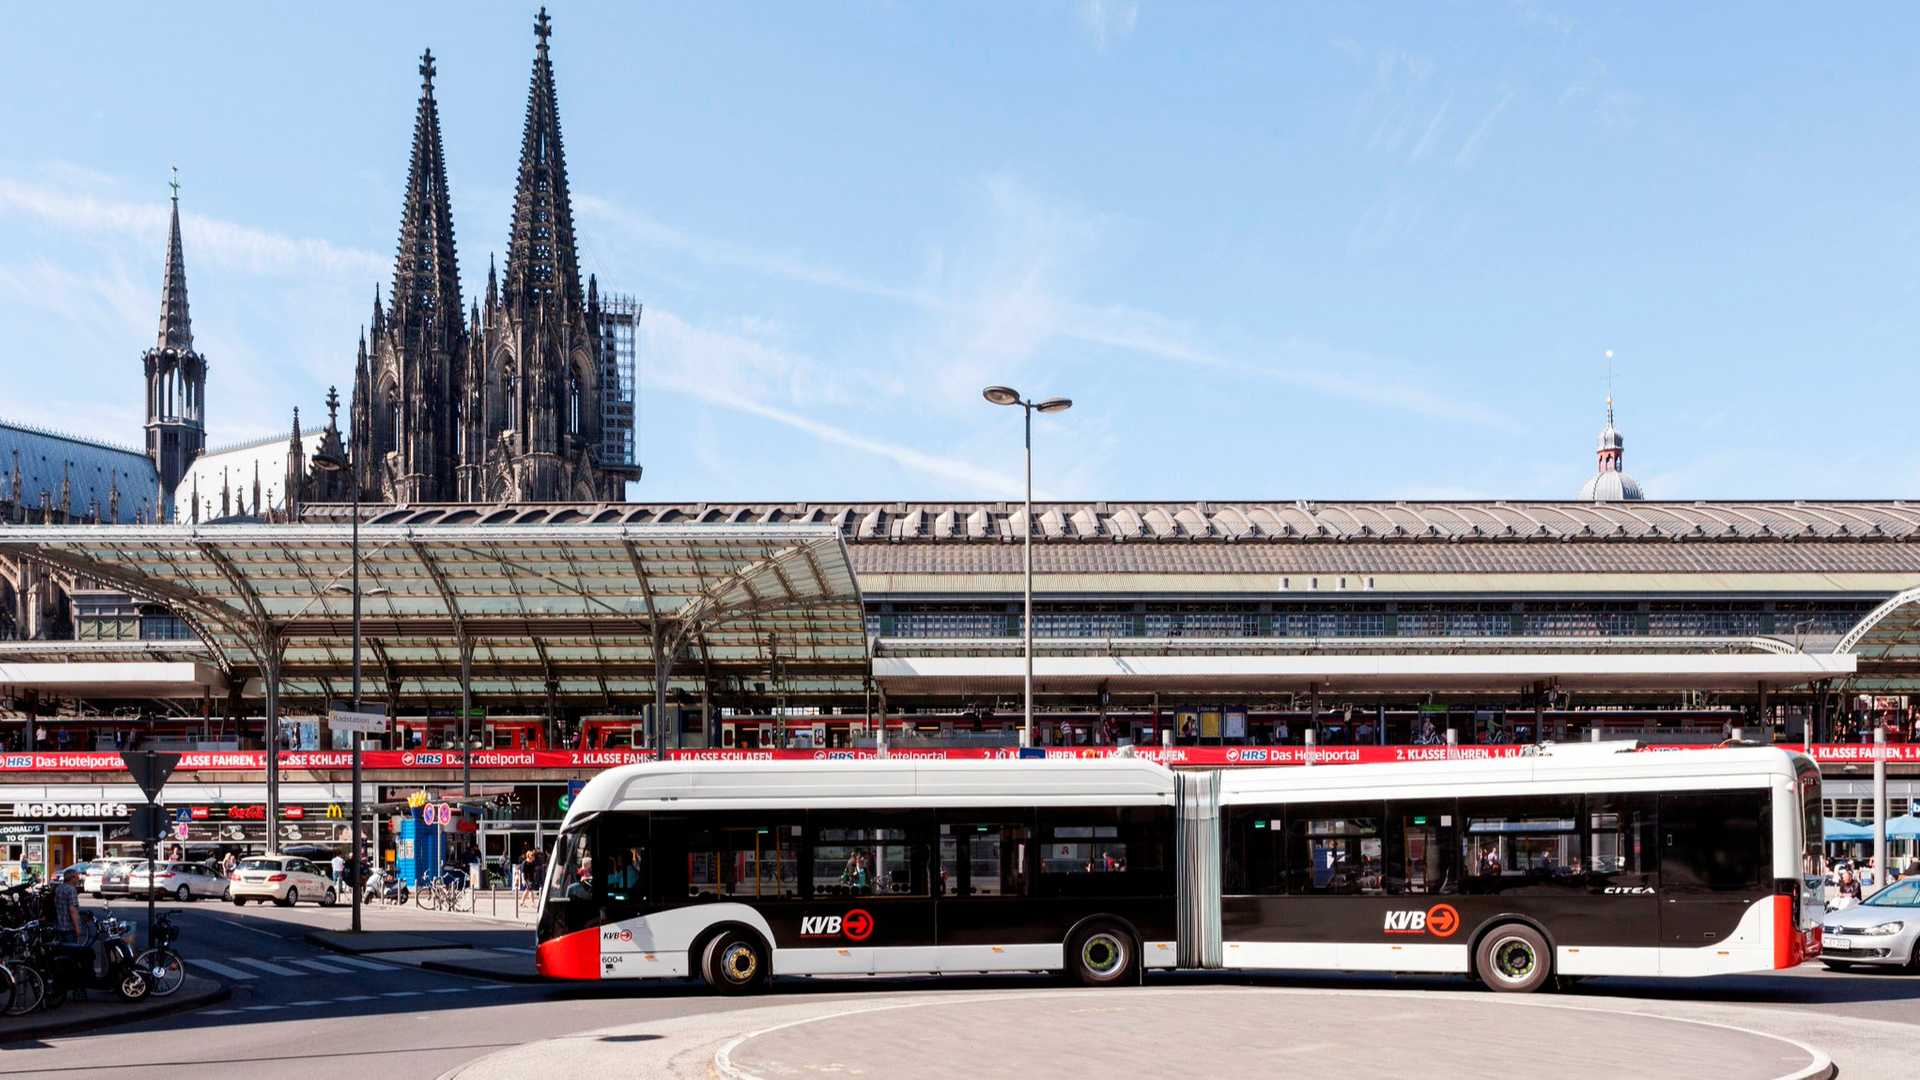 VDL To Deliver Additional 53 Electric Buses To KVB Cologne